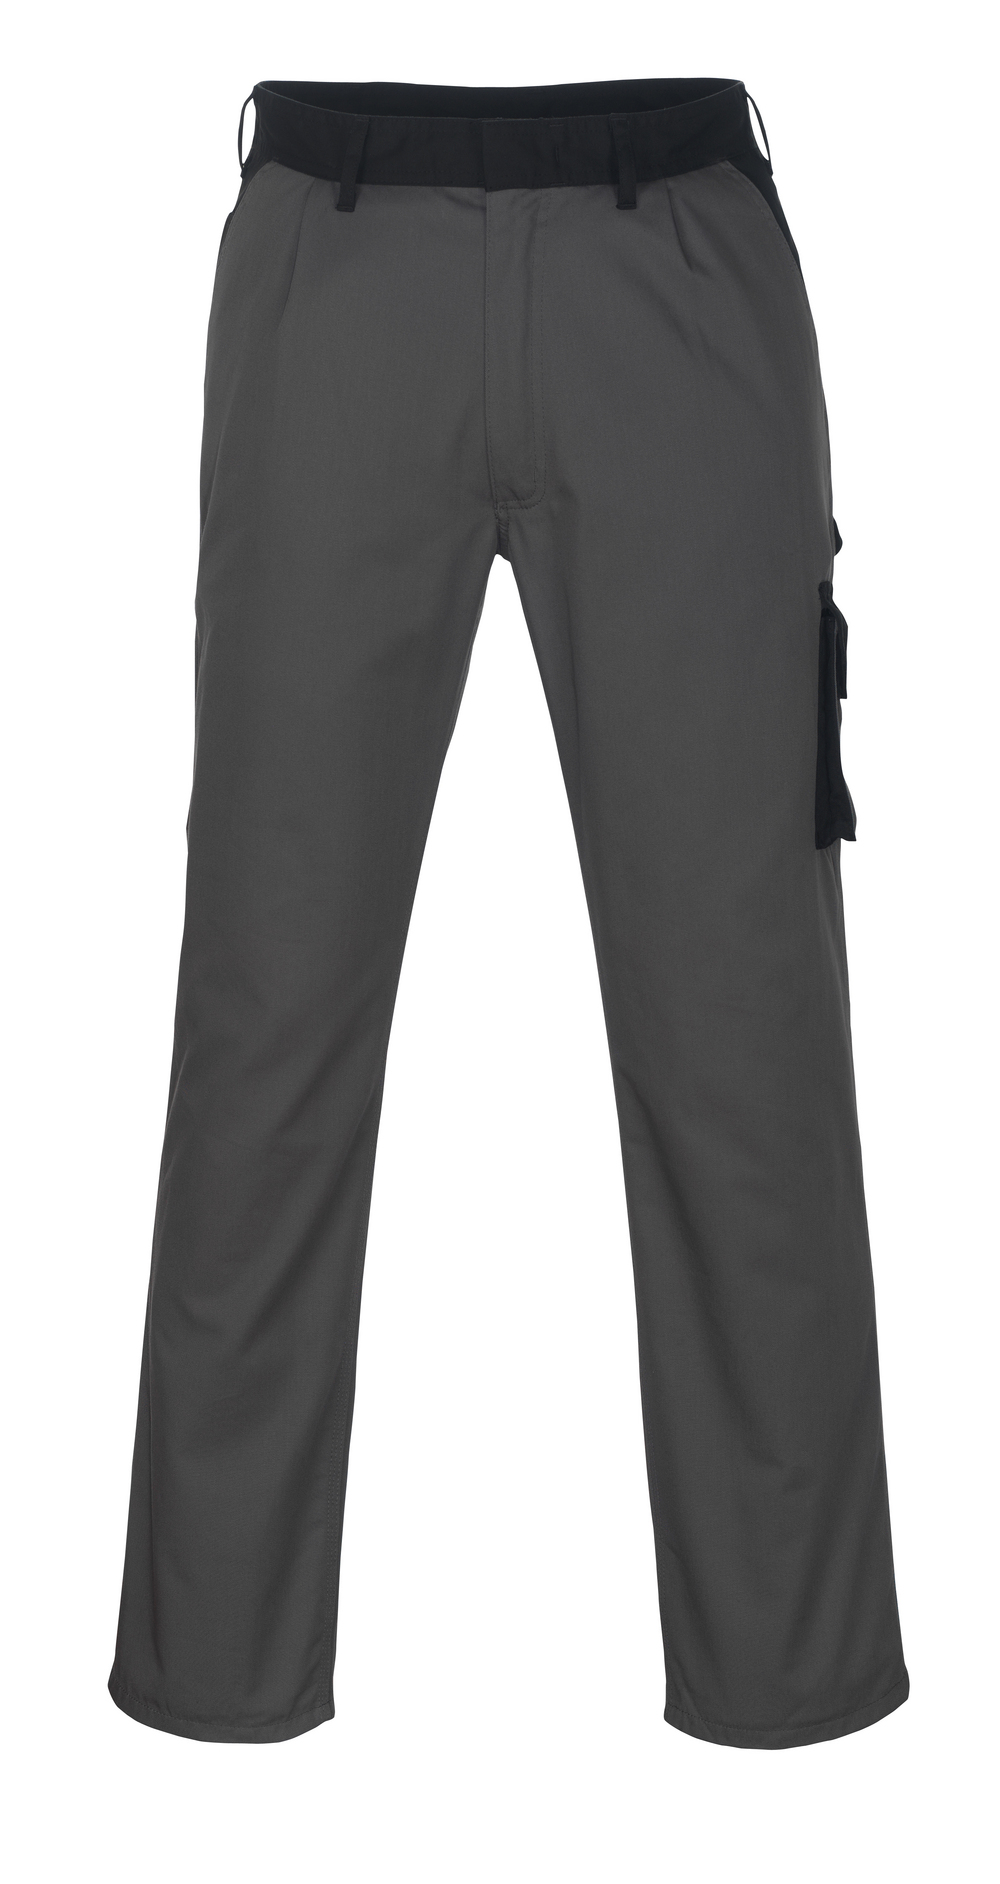 08779-442-8889 Trousers with thigh pockets - anthracite/black